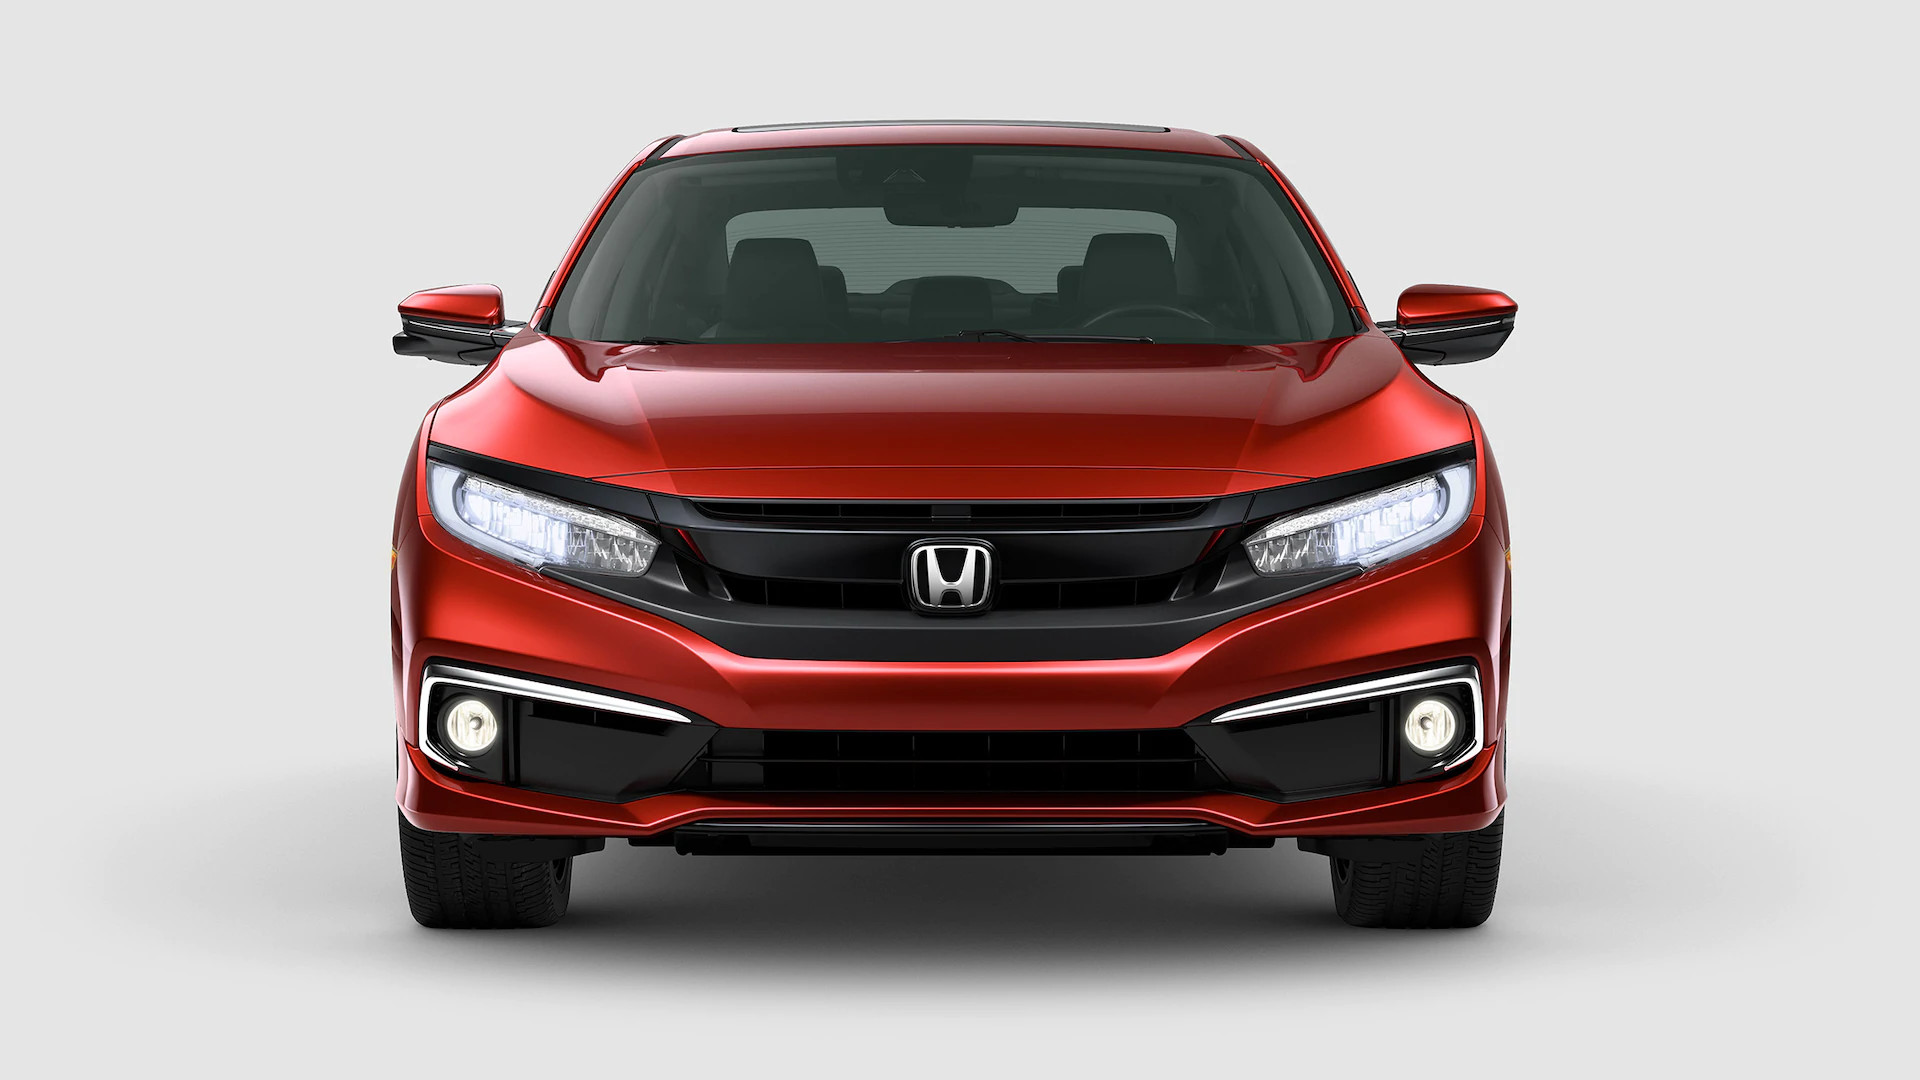 2020 Honda Civic Leasing near Magnolia, TX